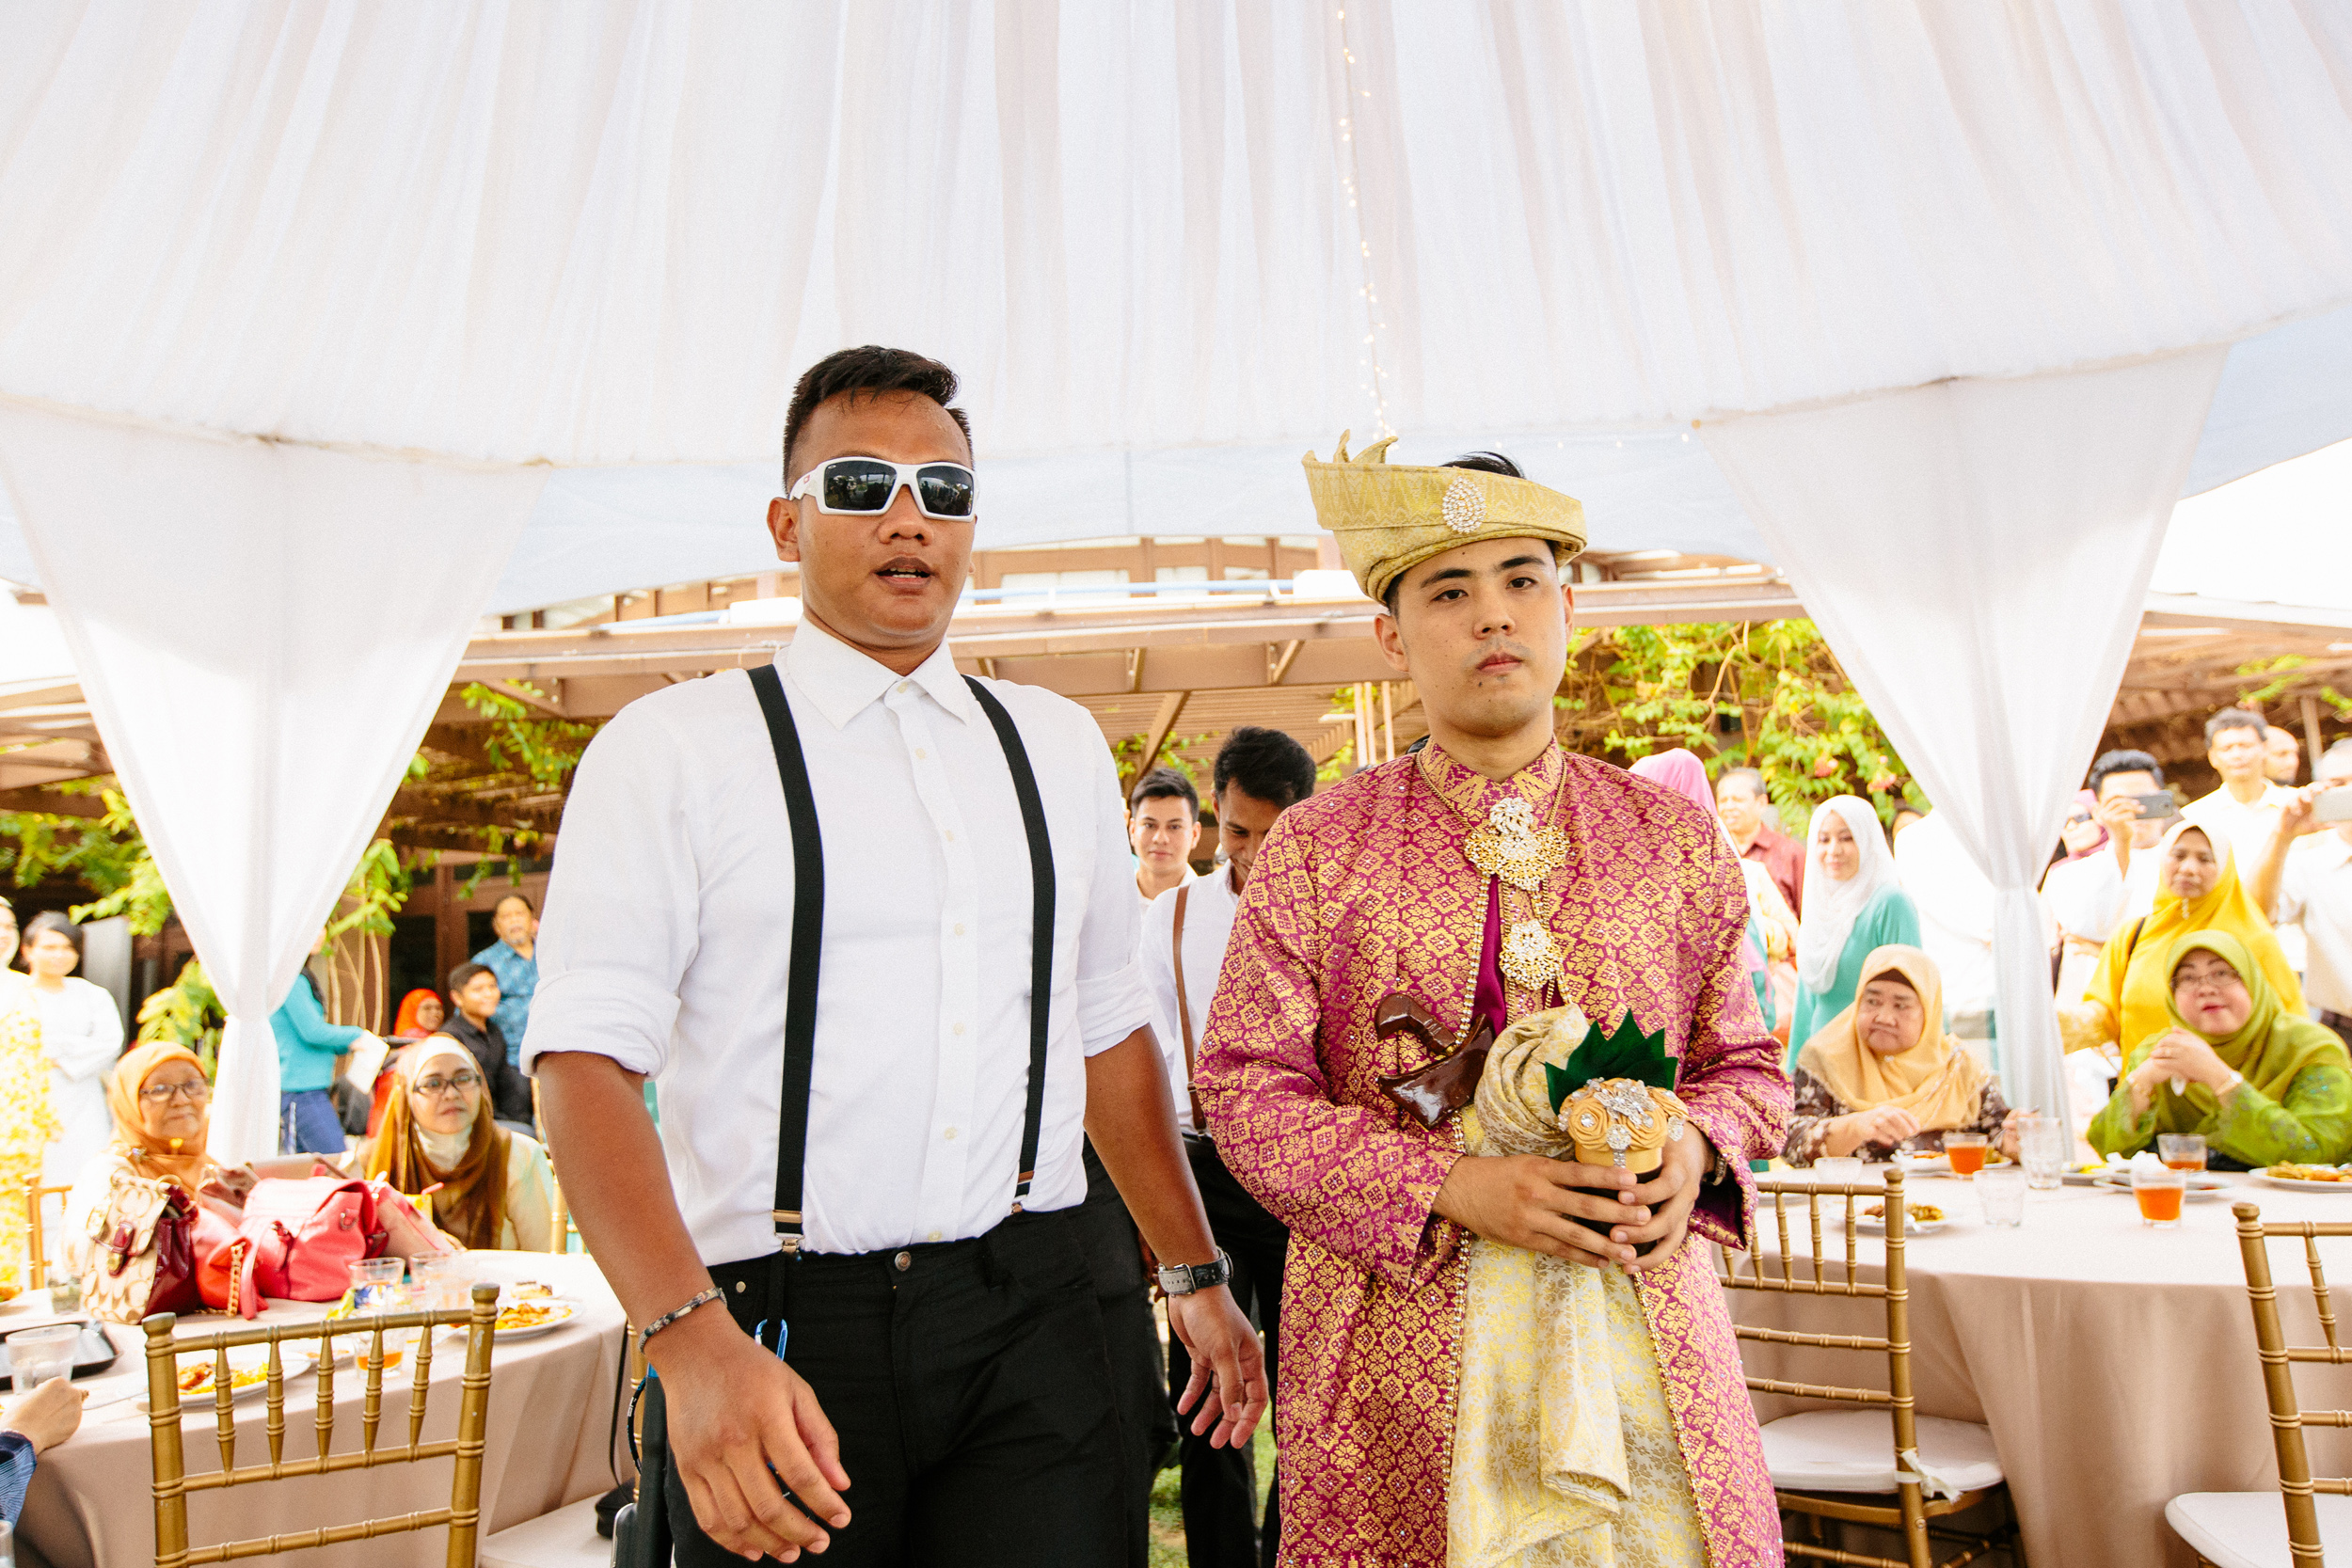 singapore-wedding-photographer-wemadethese-aisyah-helmi-43.jpg